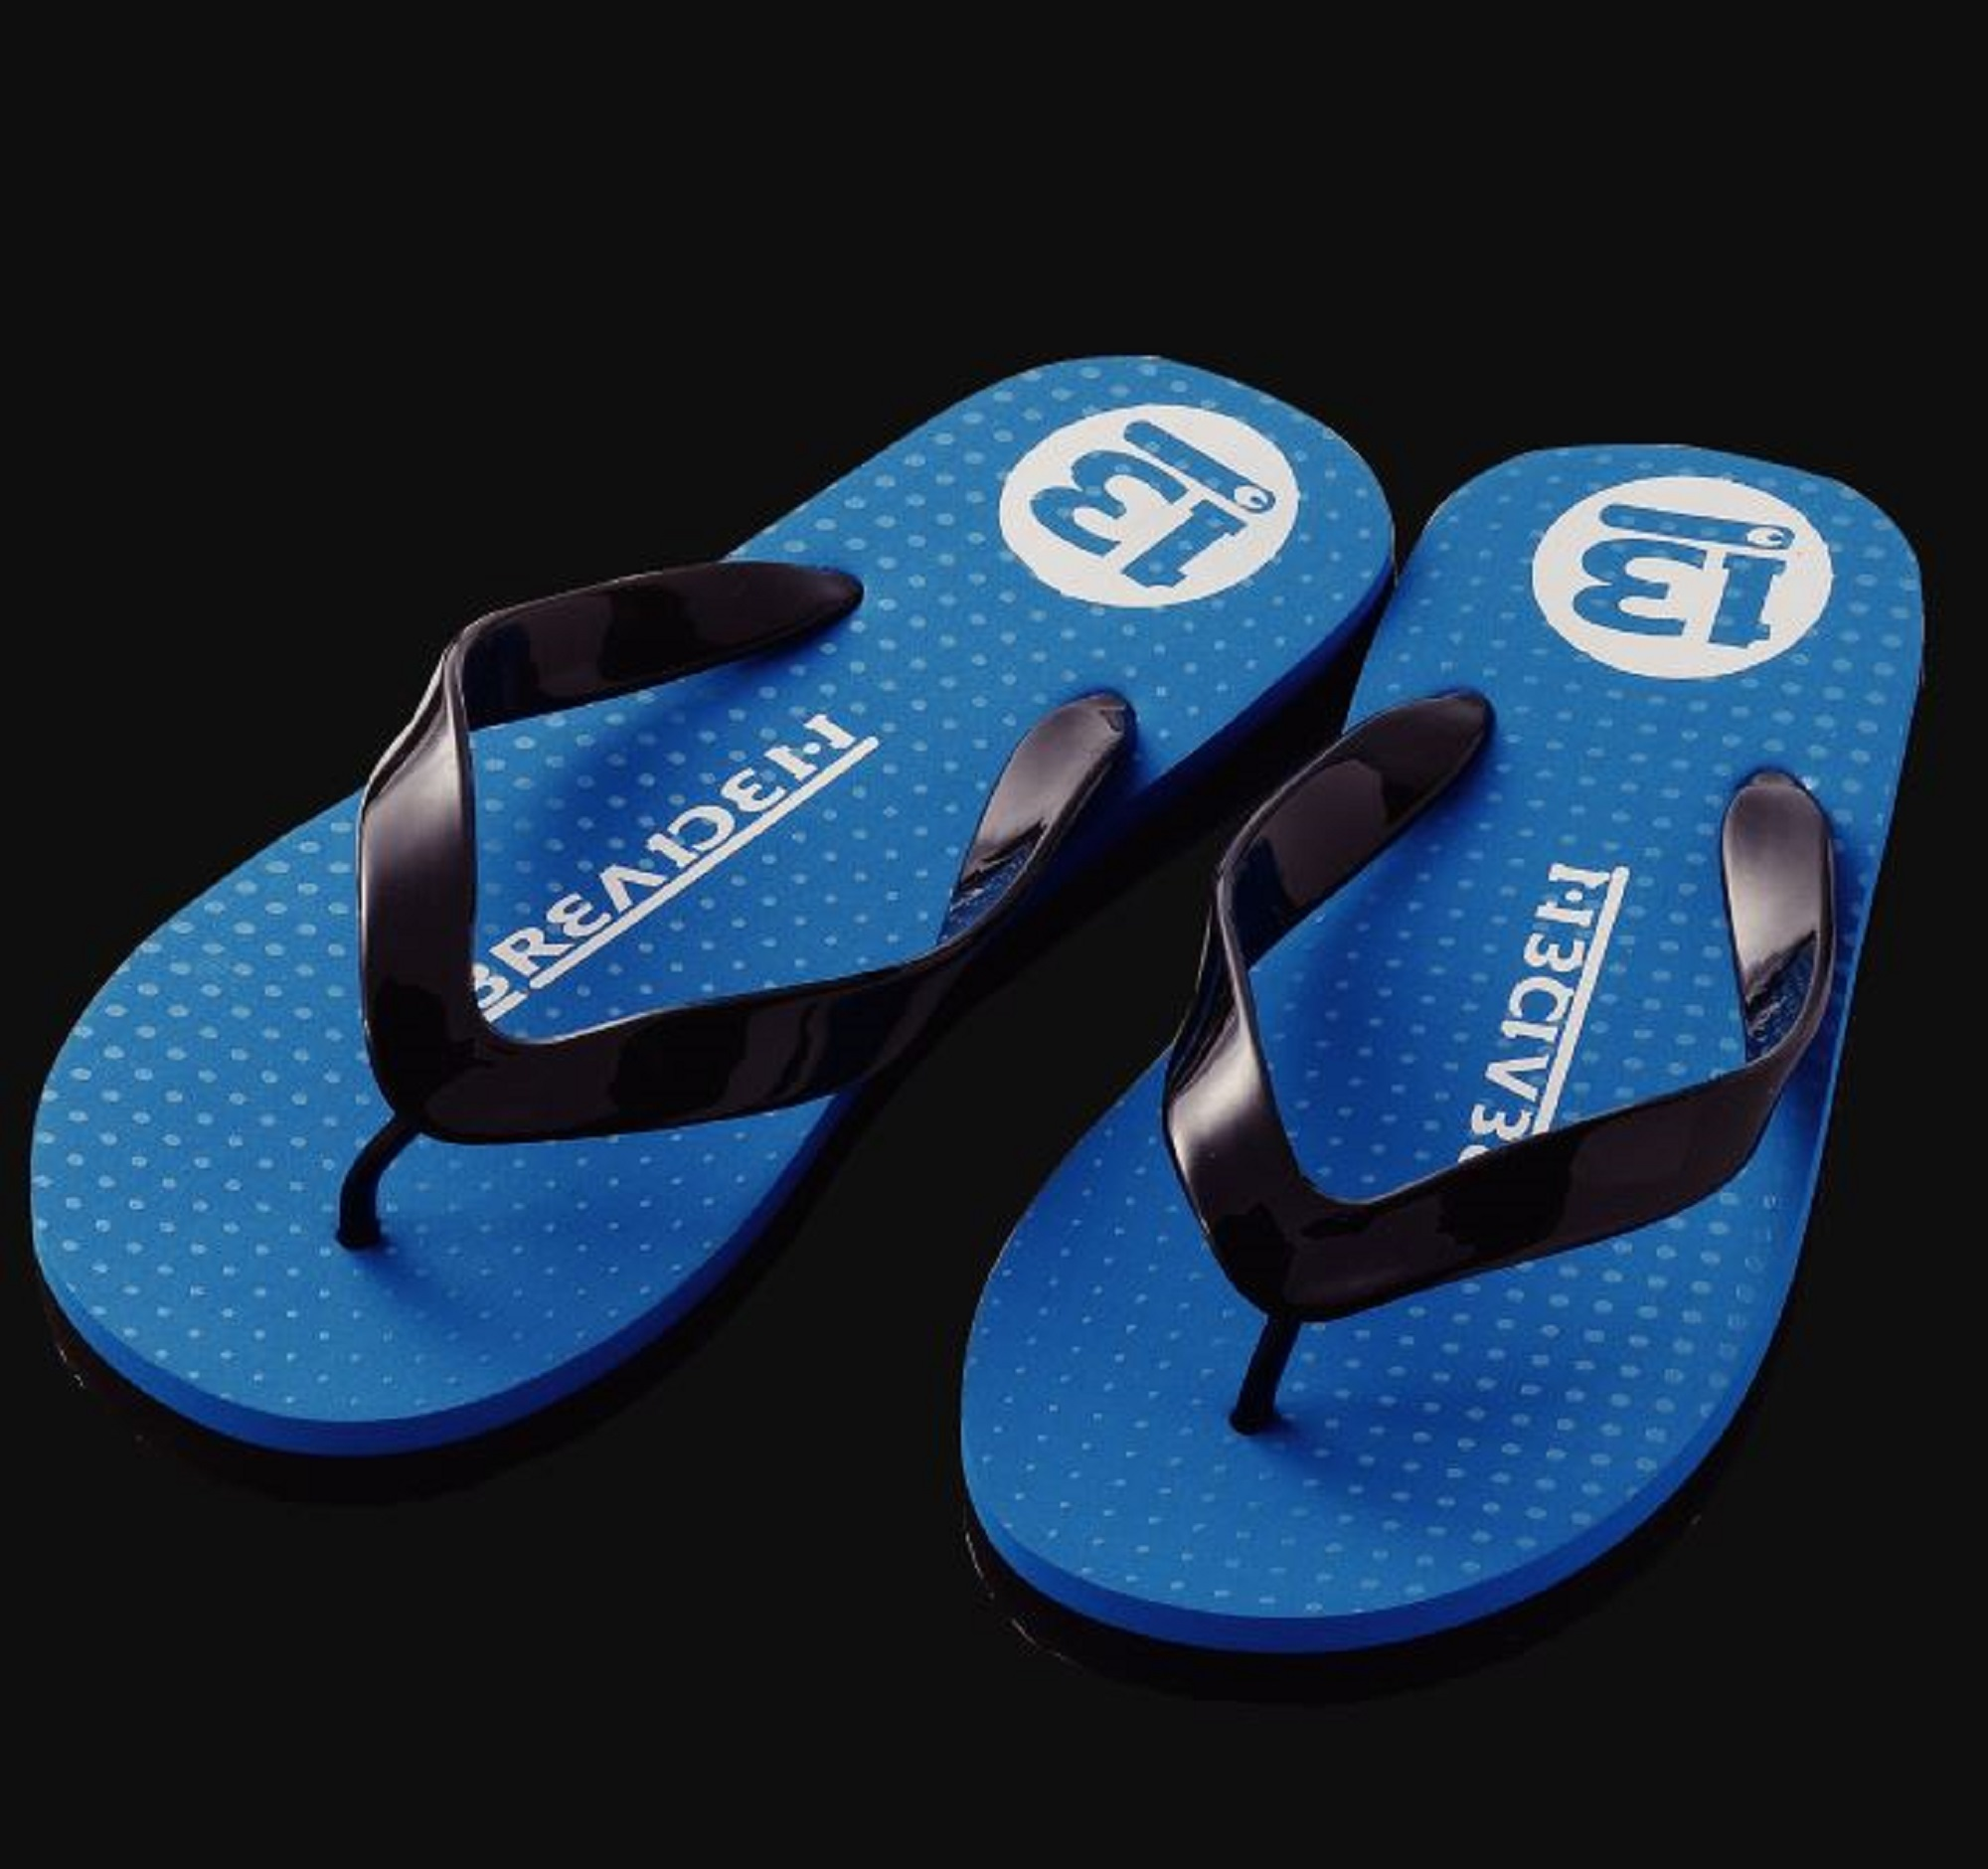 Breaden Beach Sandals Size 26cm 01 (7270)